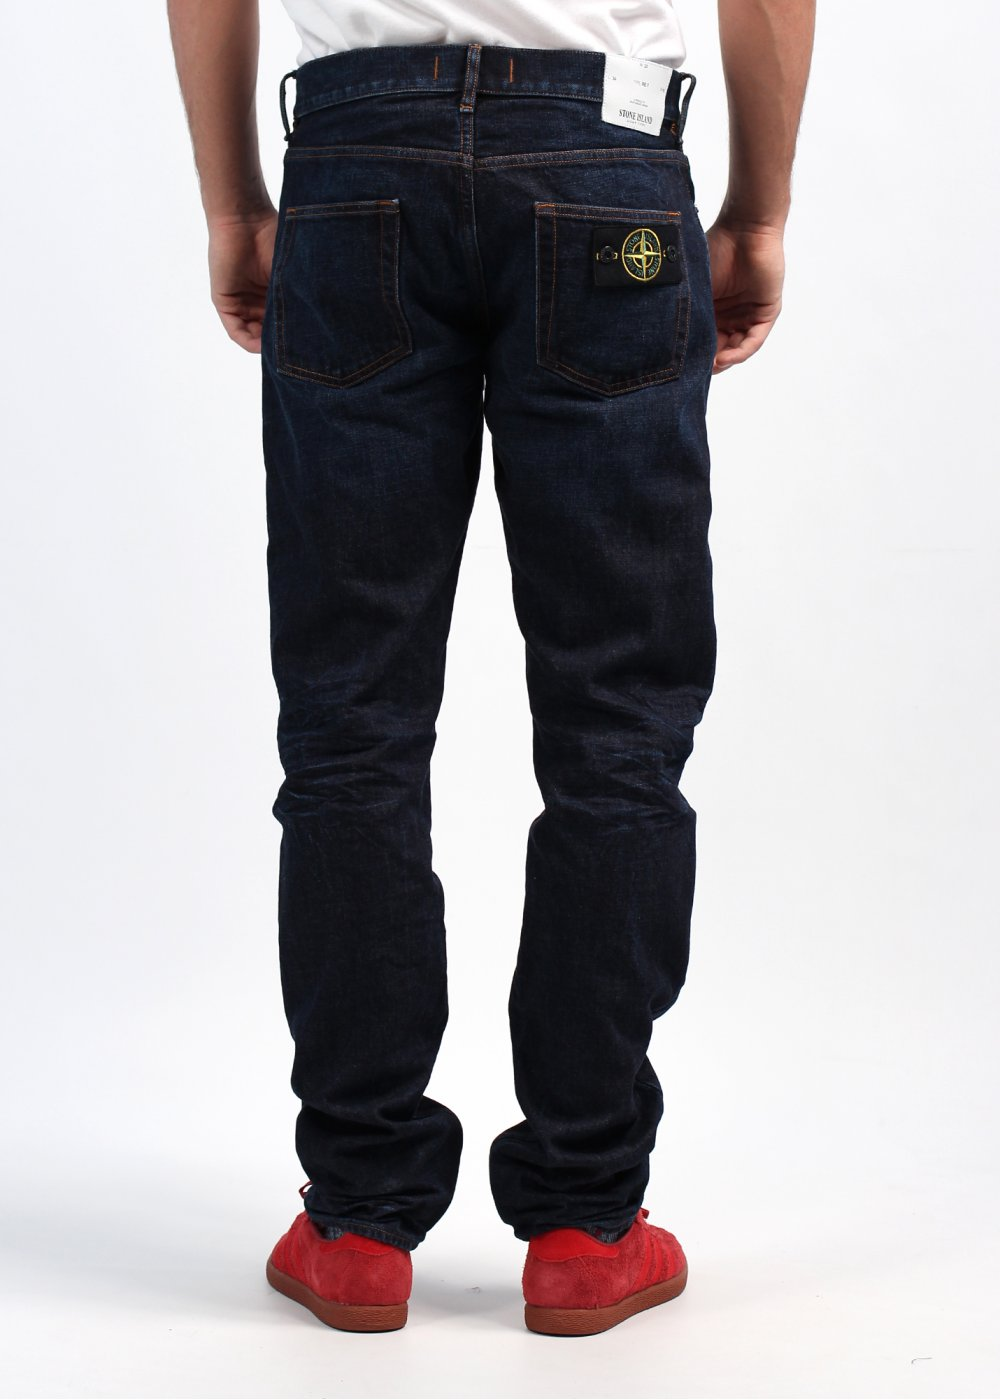 stone island regular fit jeans blue stone island from triads uk. Black Bedroom Furniture Sets. Home Design Ideas